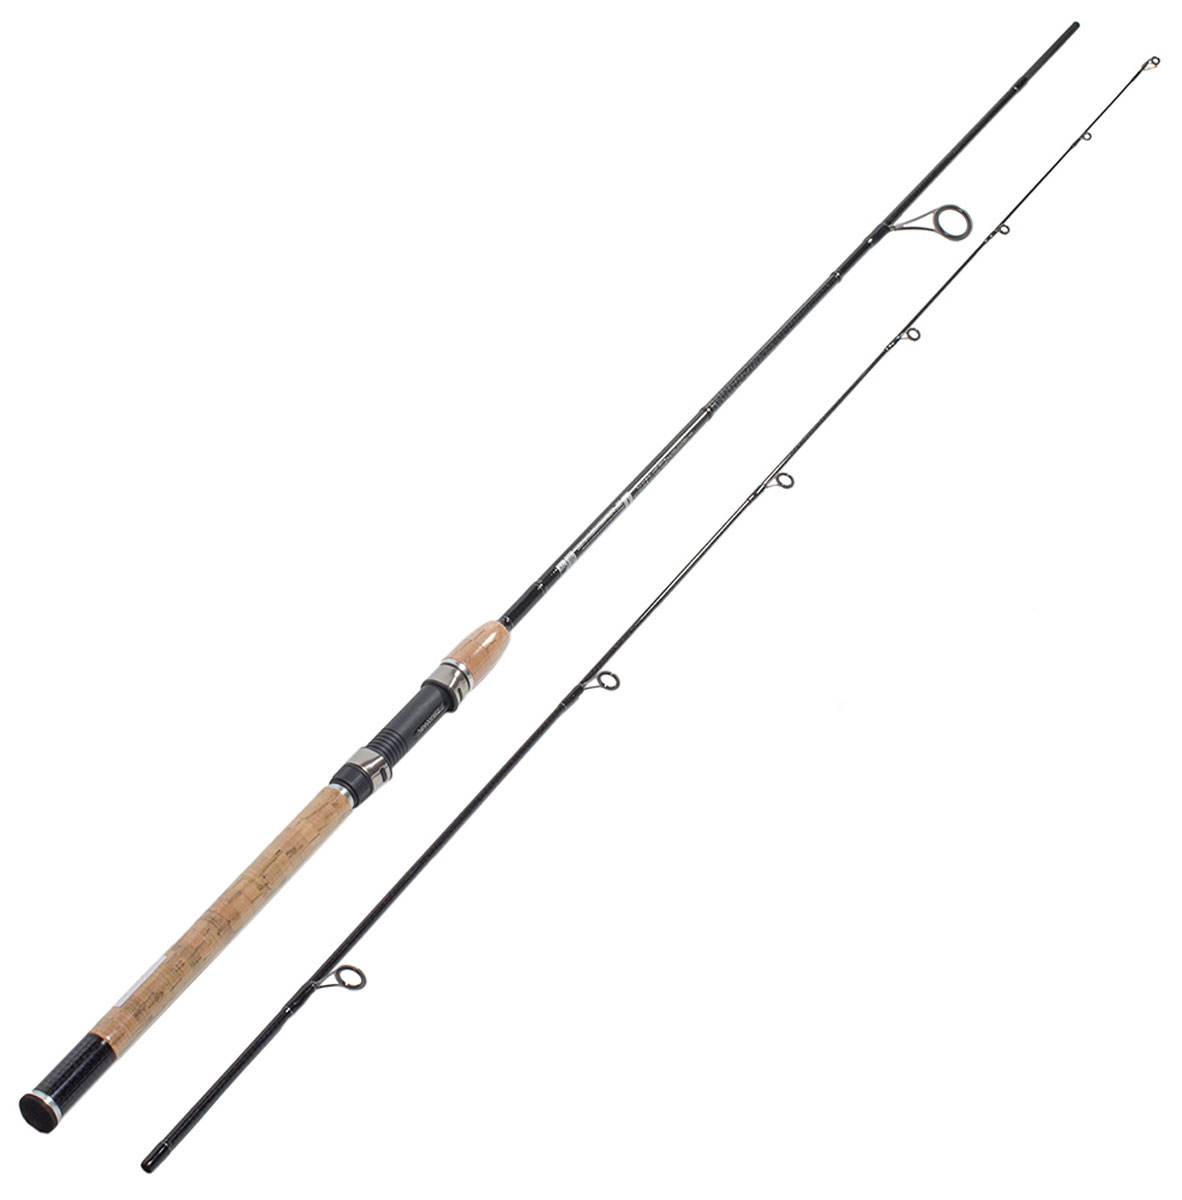 Спиннинг штекерный Daiwa Crossfire, 2,1 м, 2-7 г fire steel survival striker army camping hunting flint with plastic holder